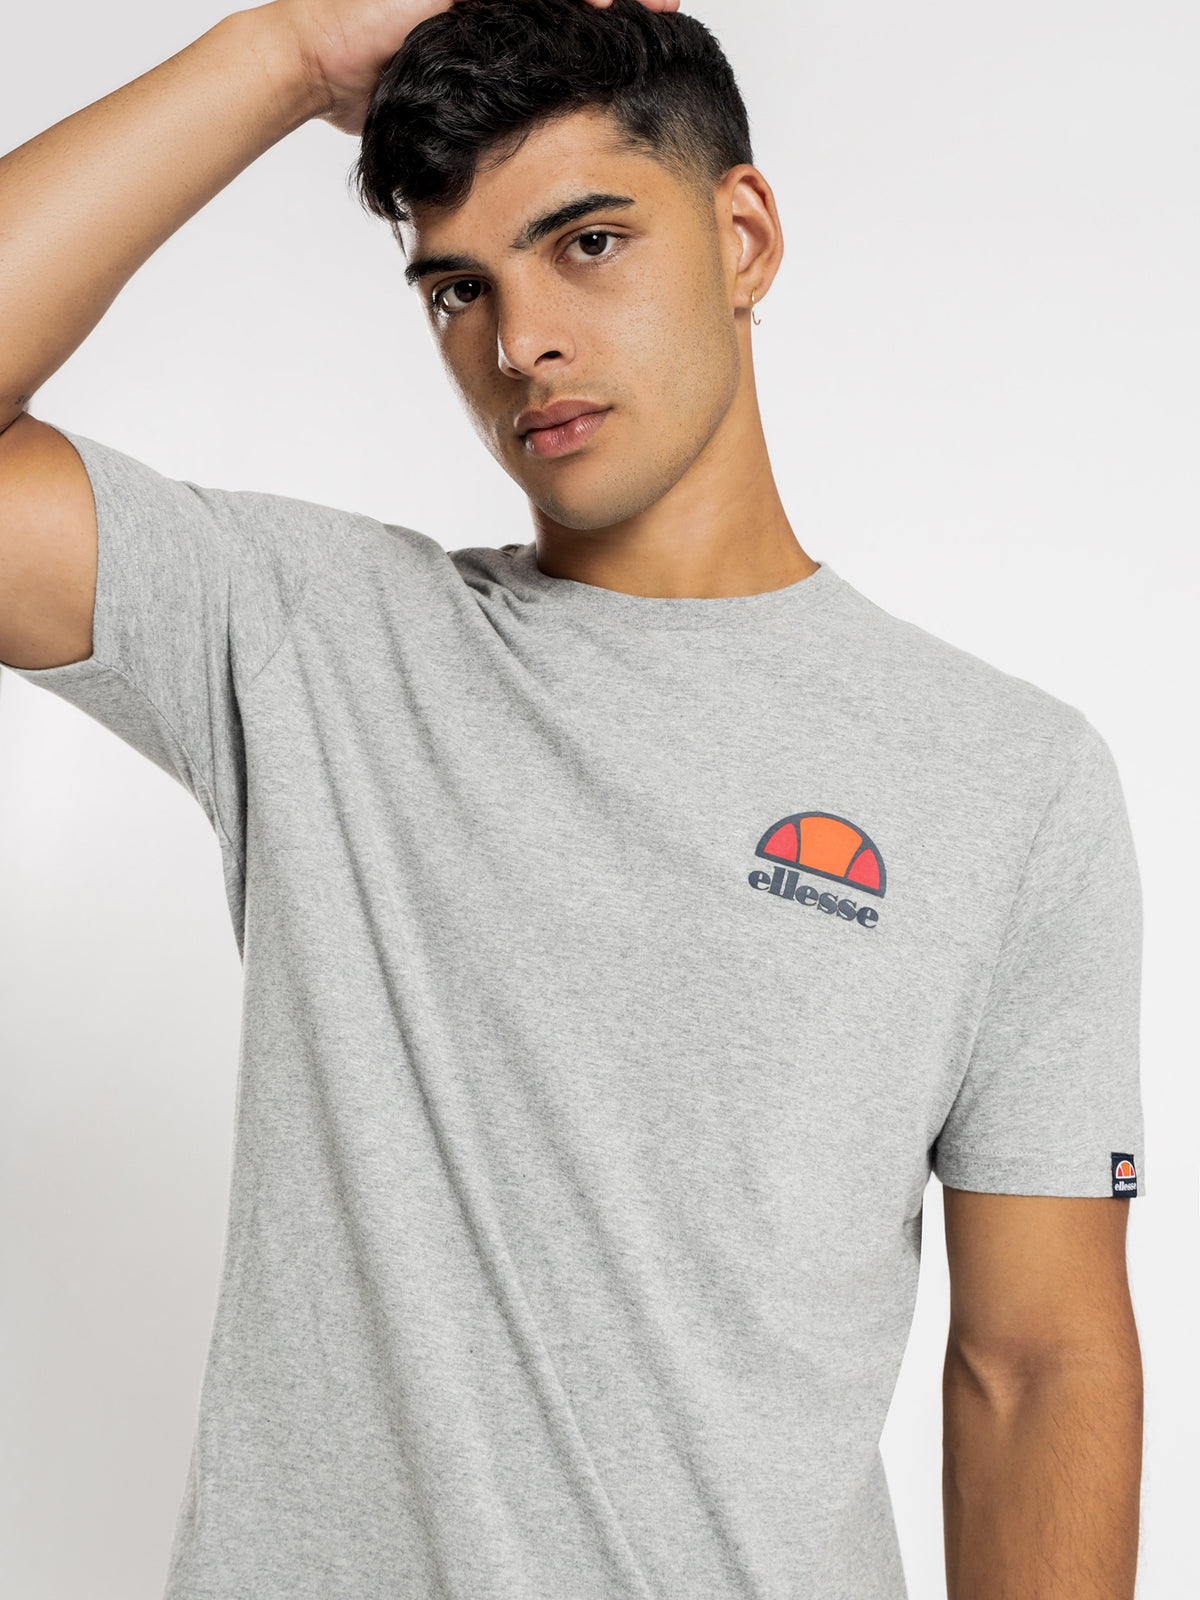 Canaletto T-Shirt in Grey Marl